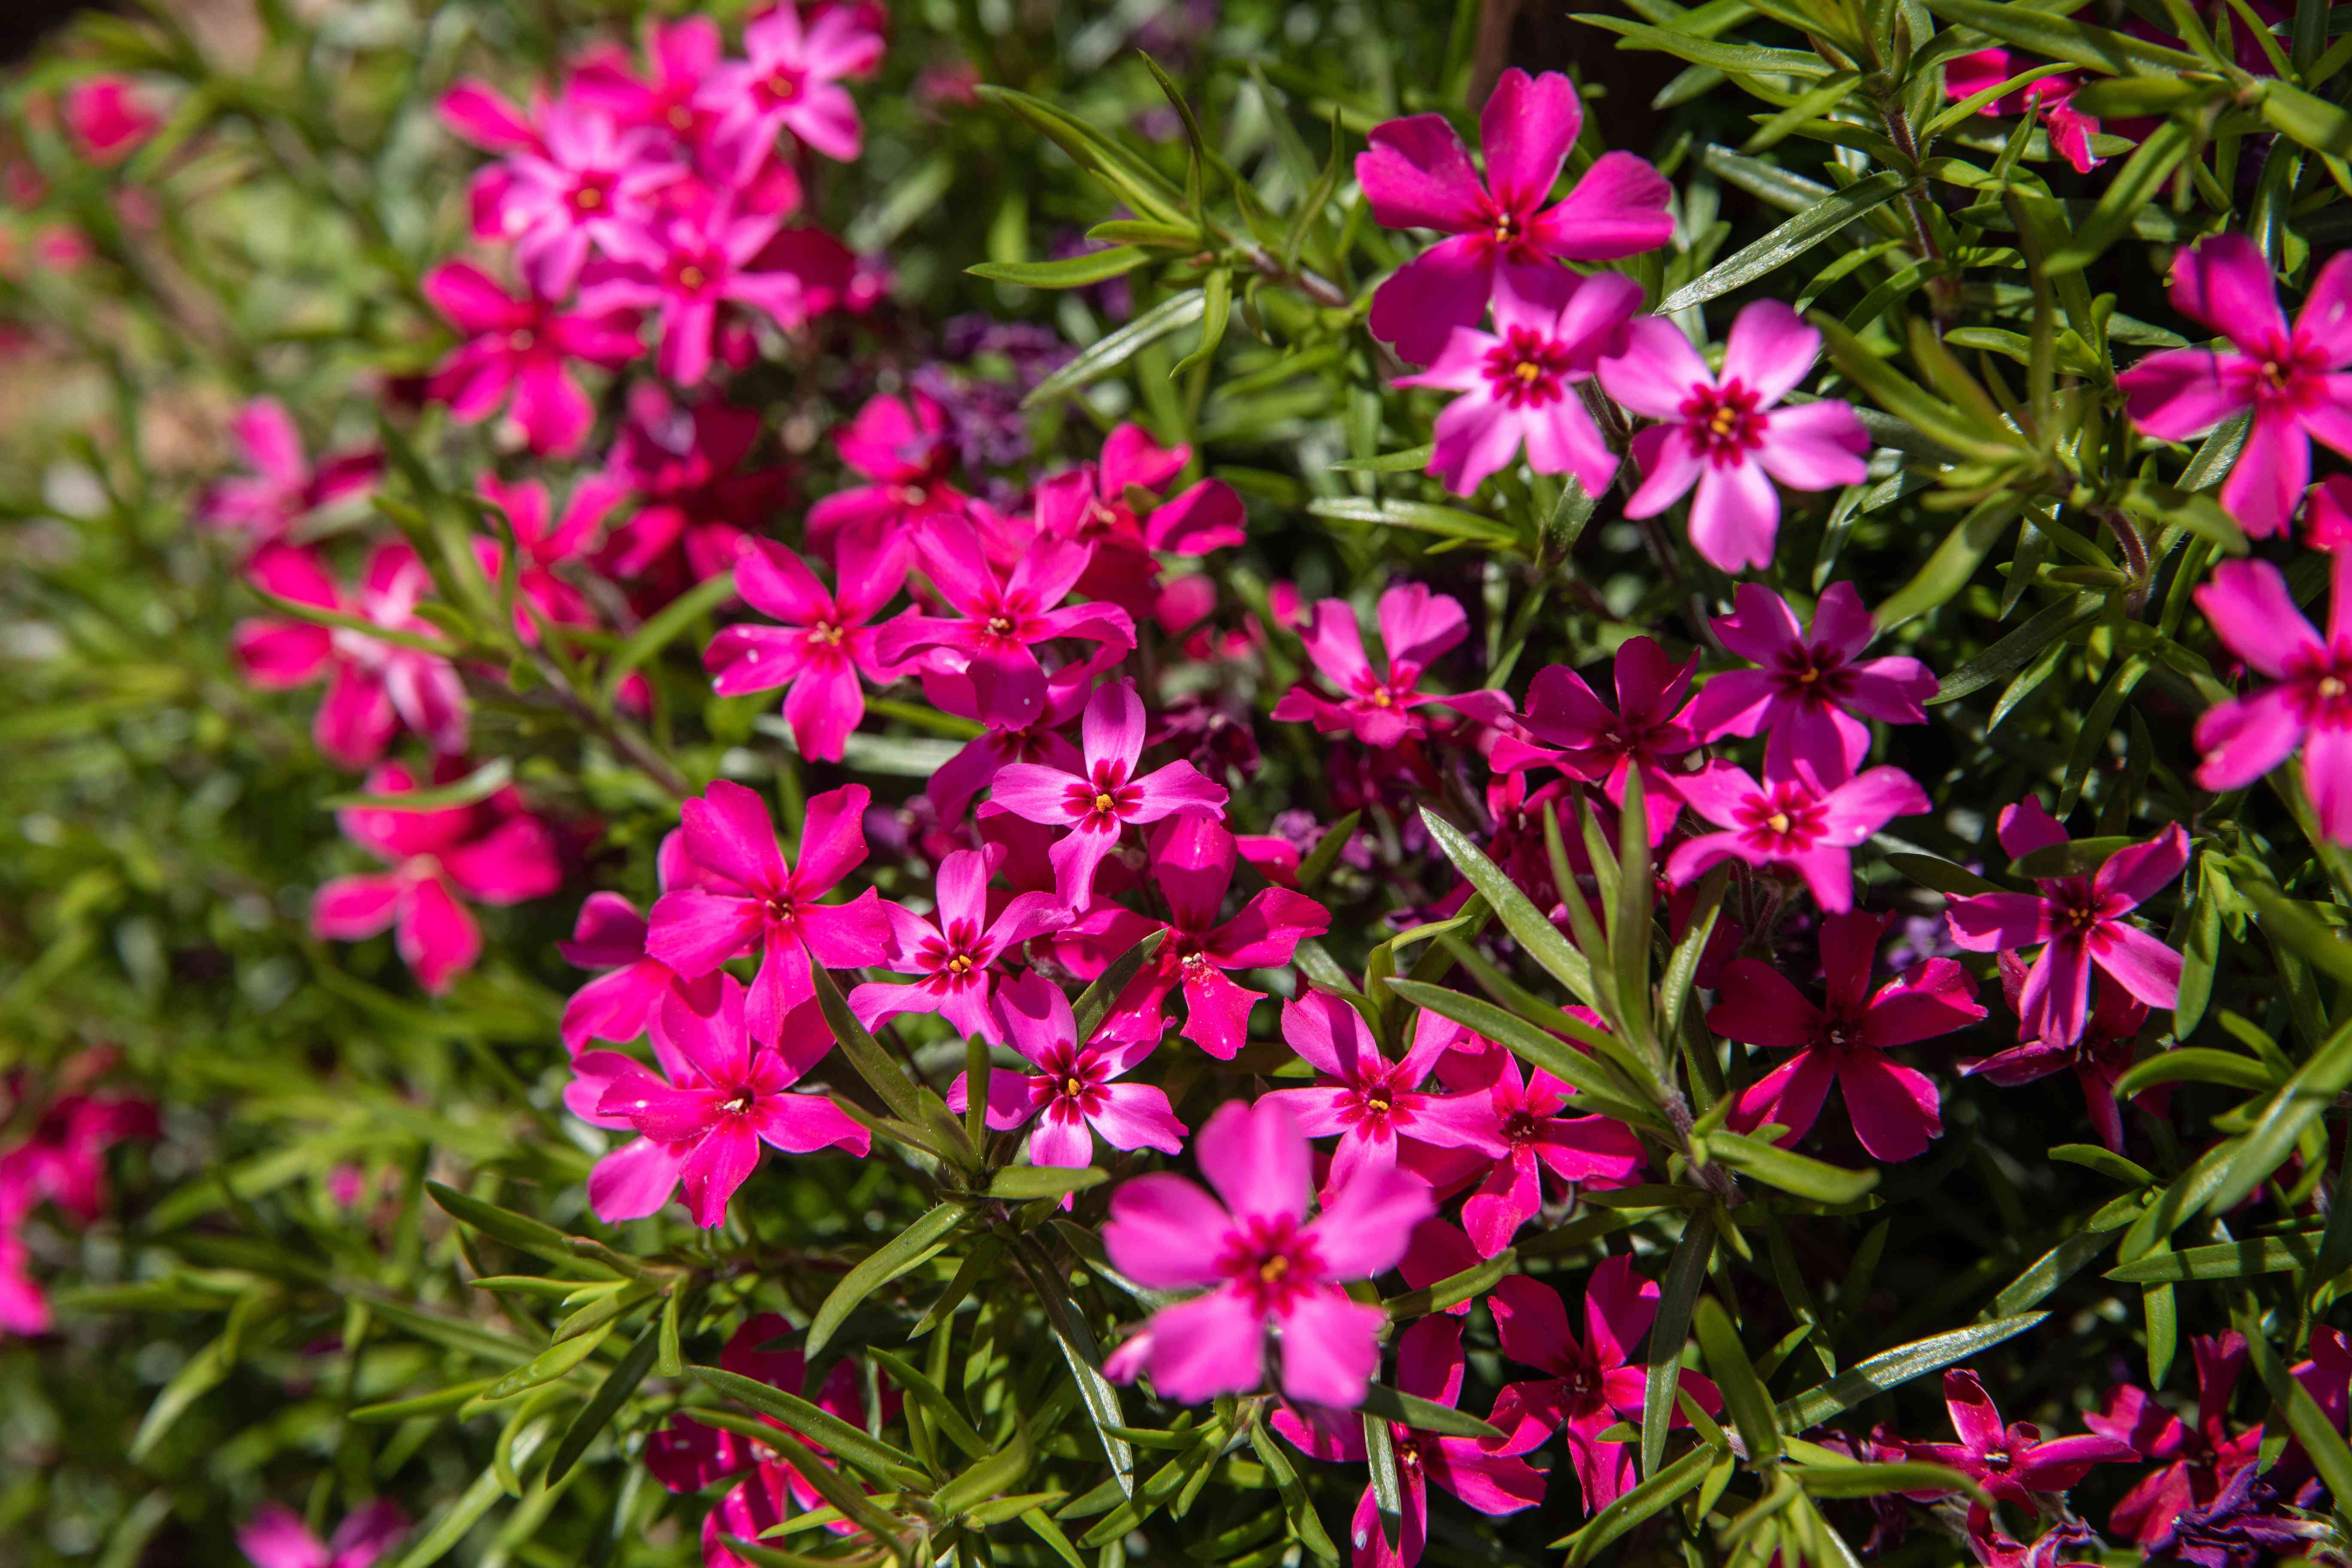 Phlox plant with bright pink flowers surrounded by blade-like leaves in sunlight